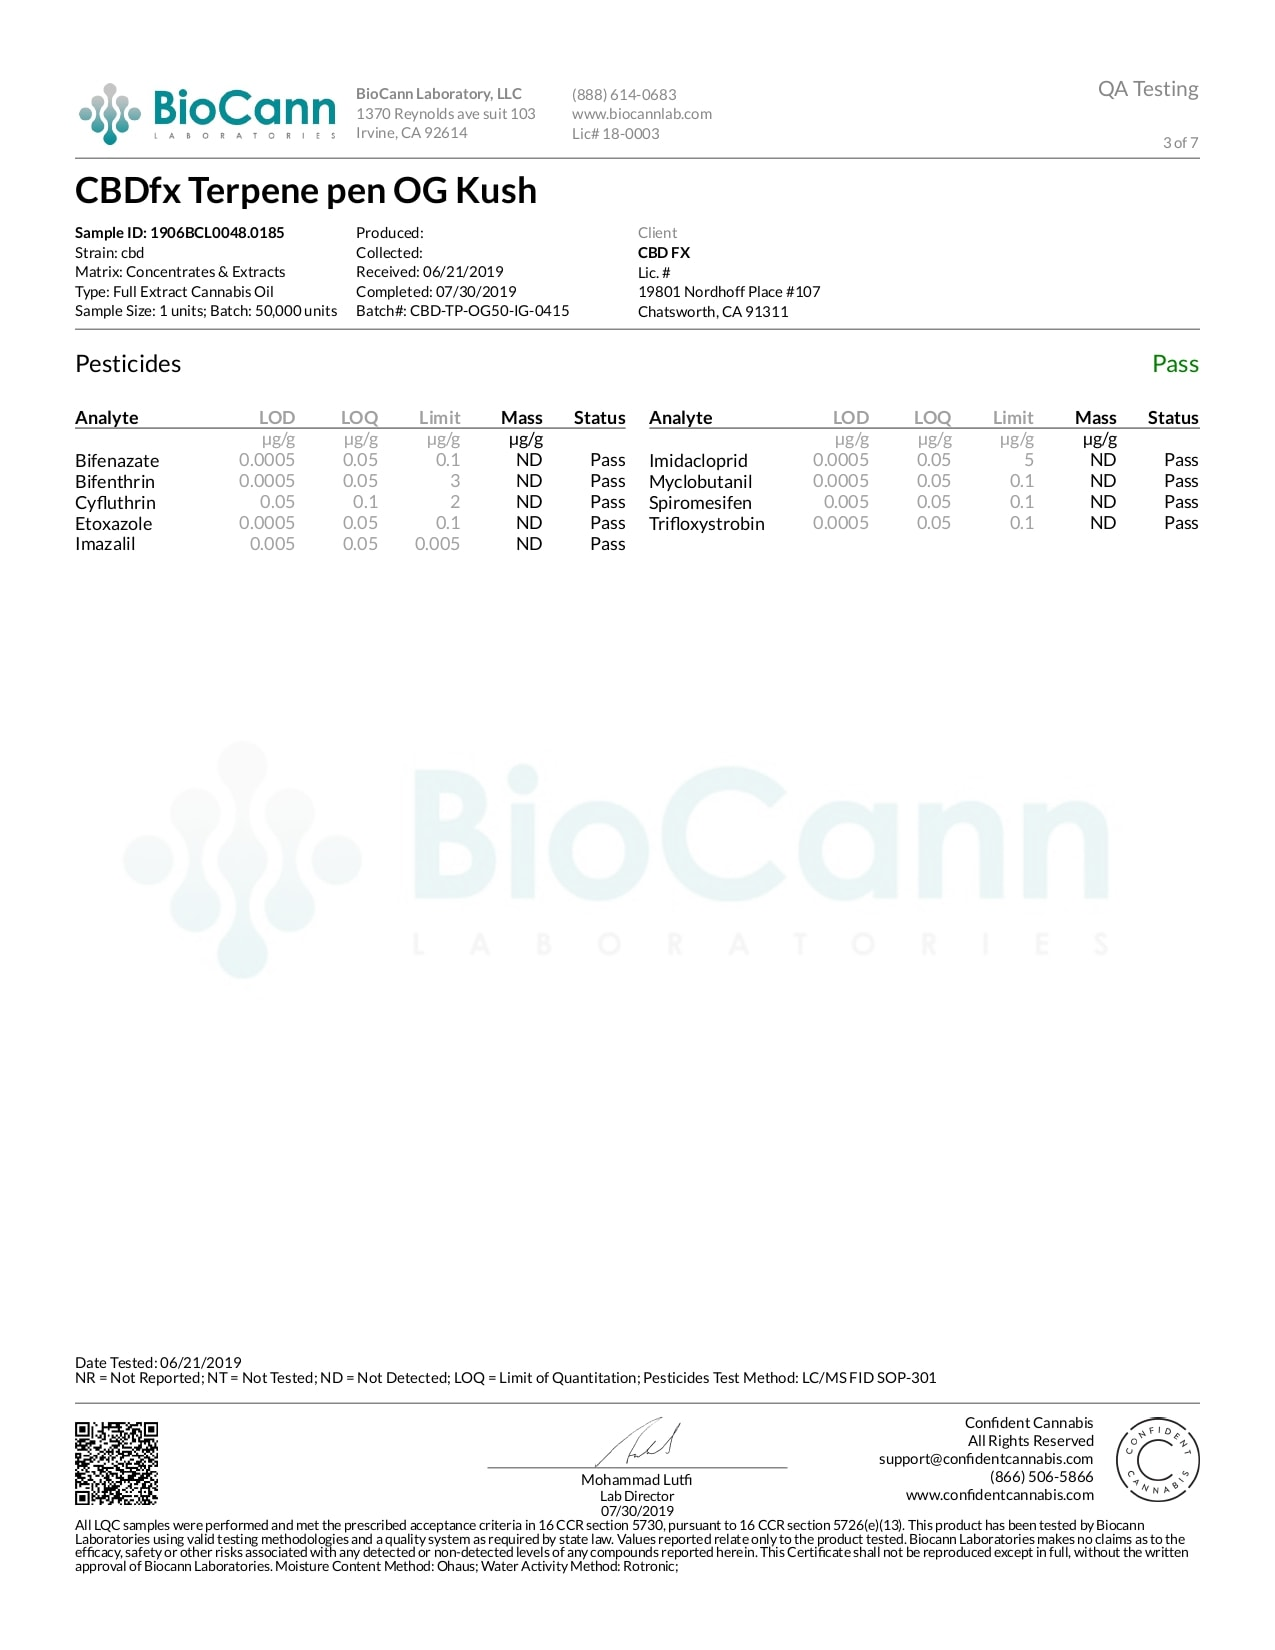 CBDfx OG Kush Lab Report CBD Terpenes Vape Pen 50mg